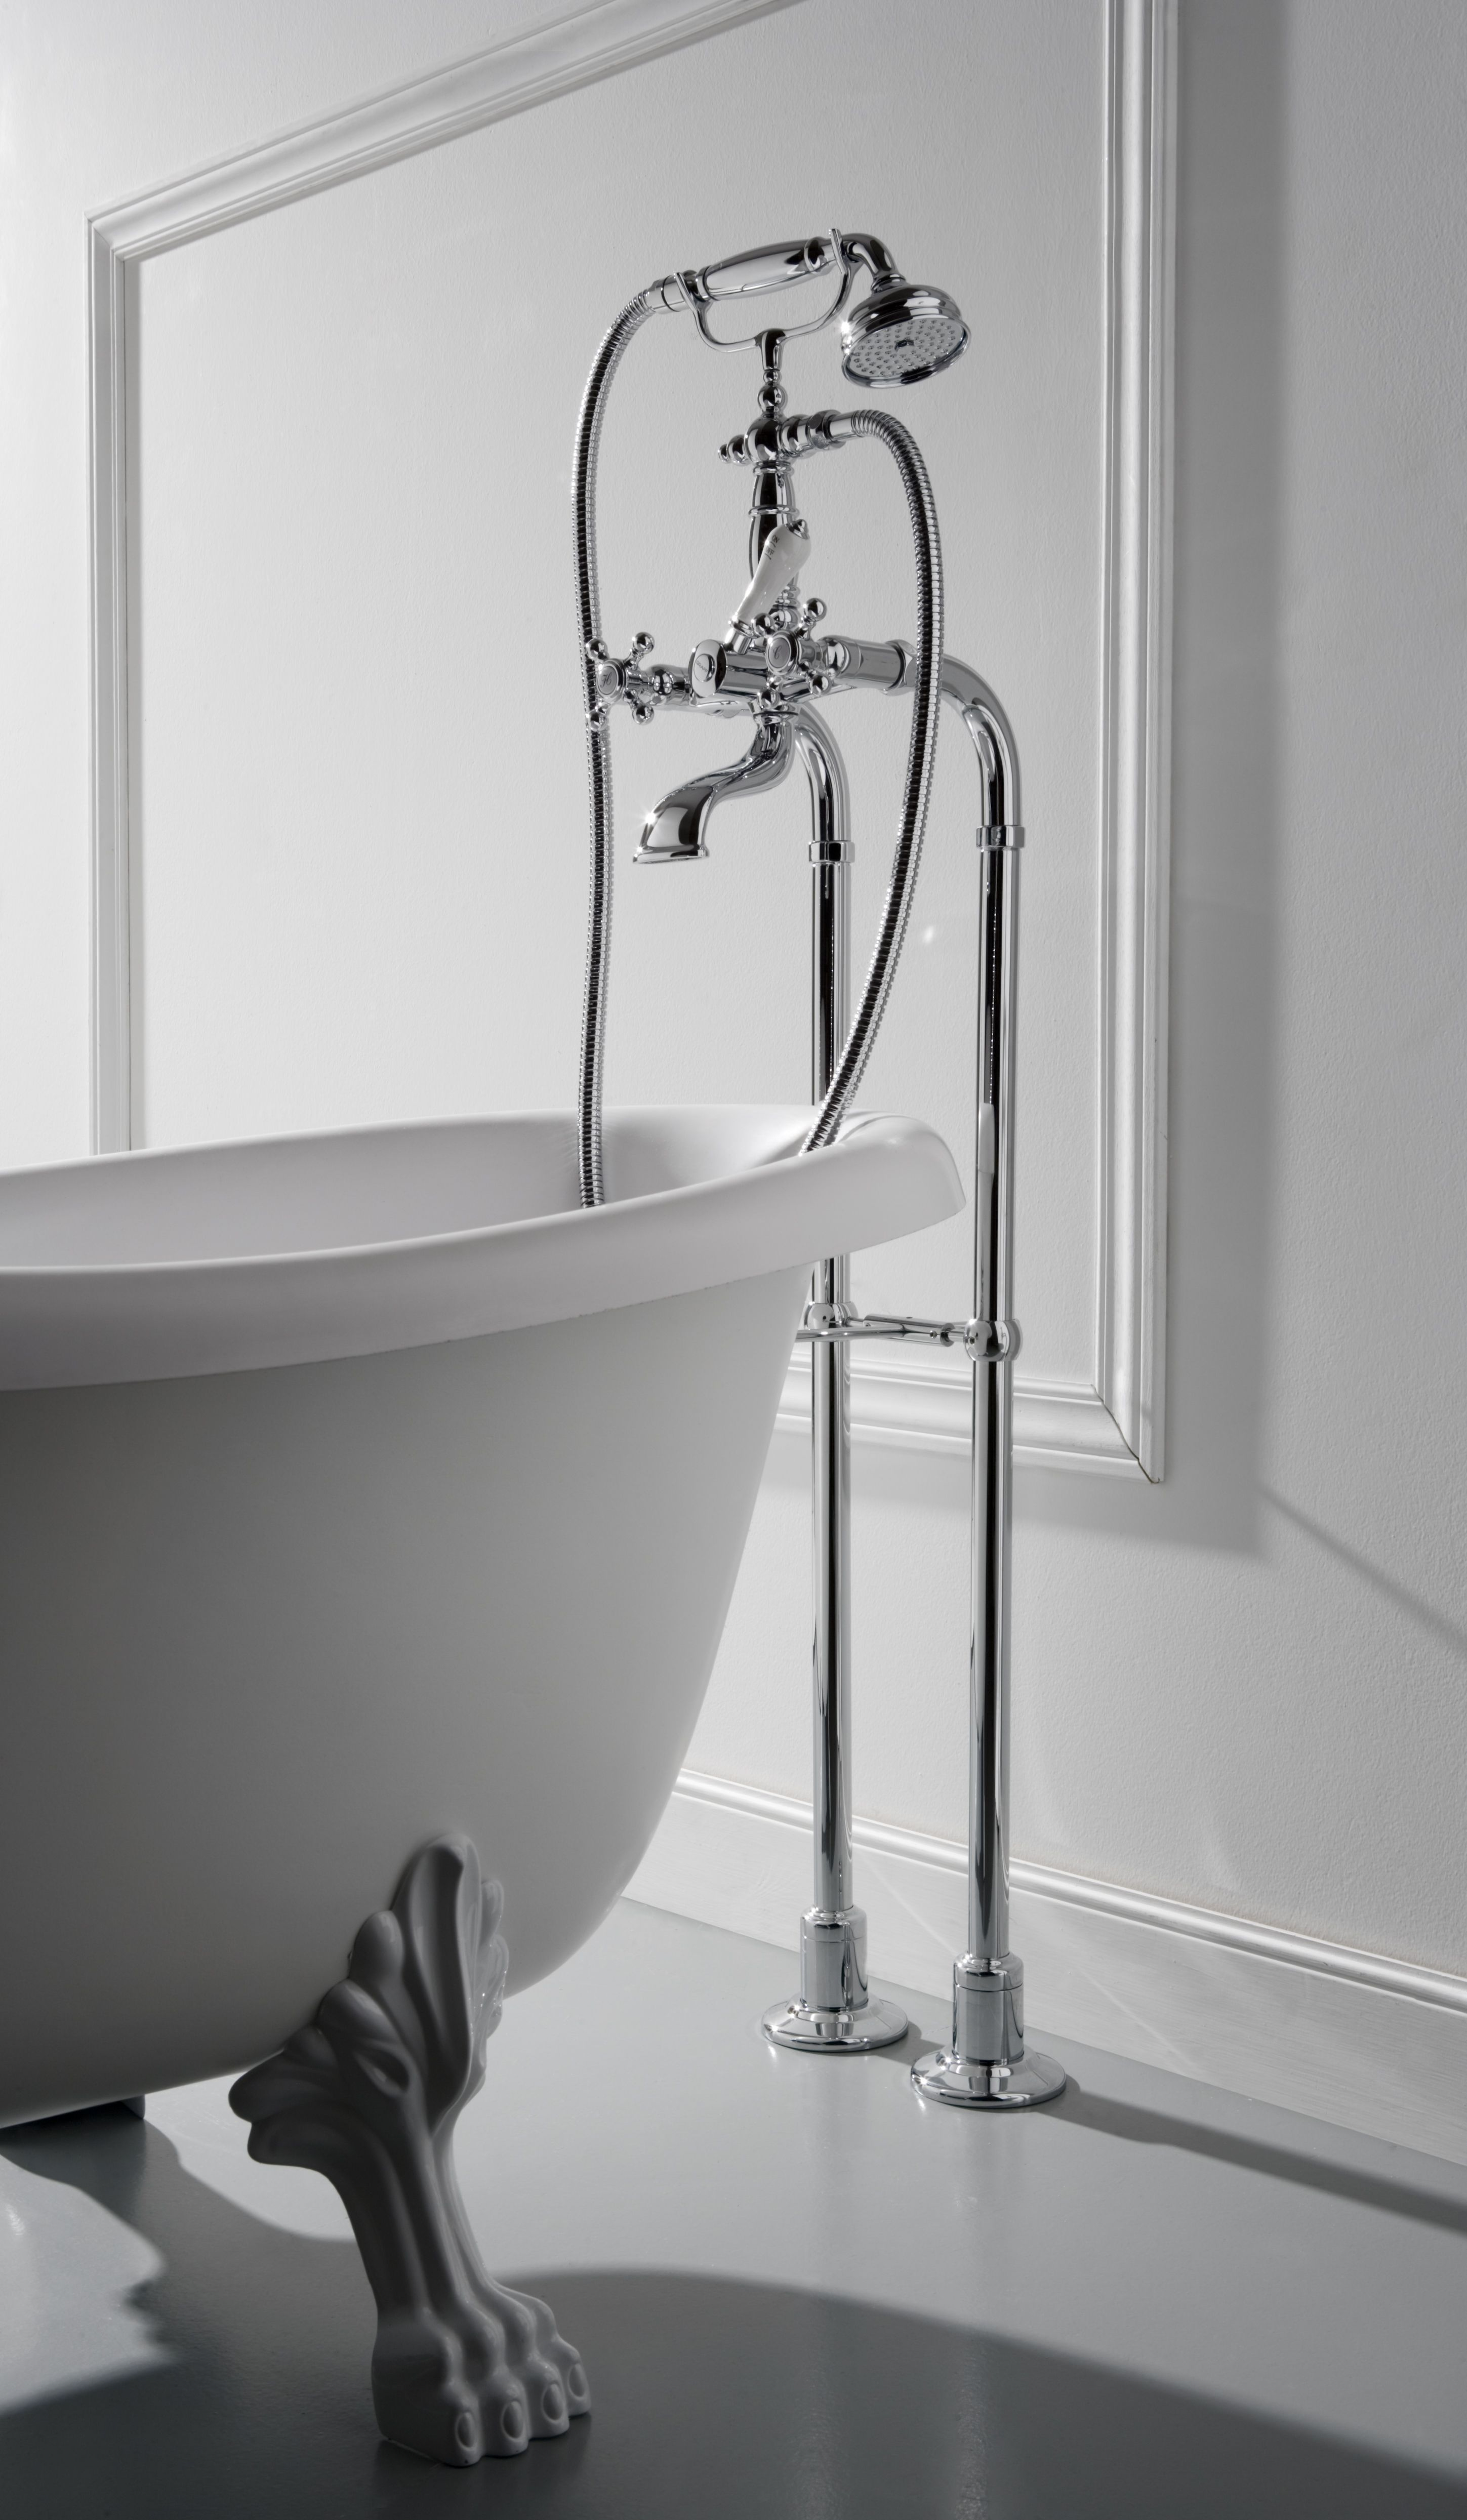 CANTERBURY Bathtub tap by Graff Europe West | graff faucets ...